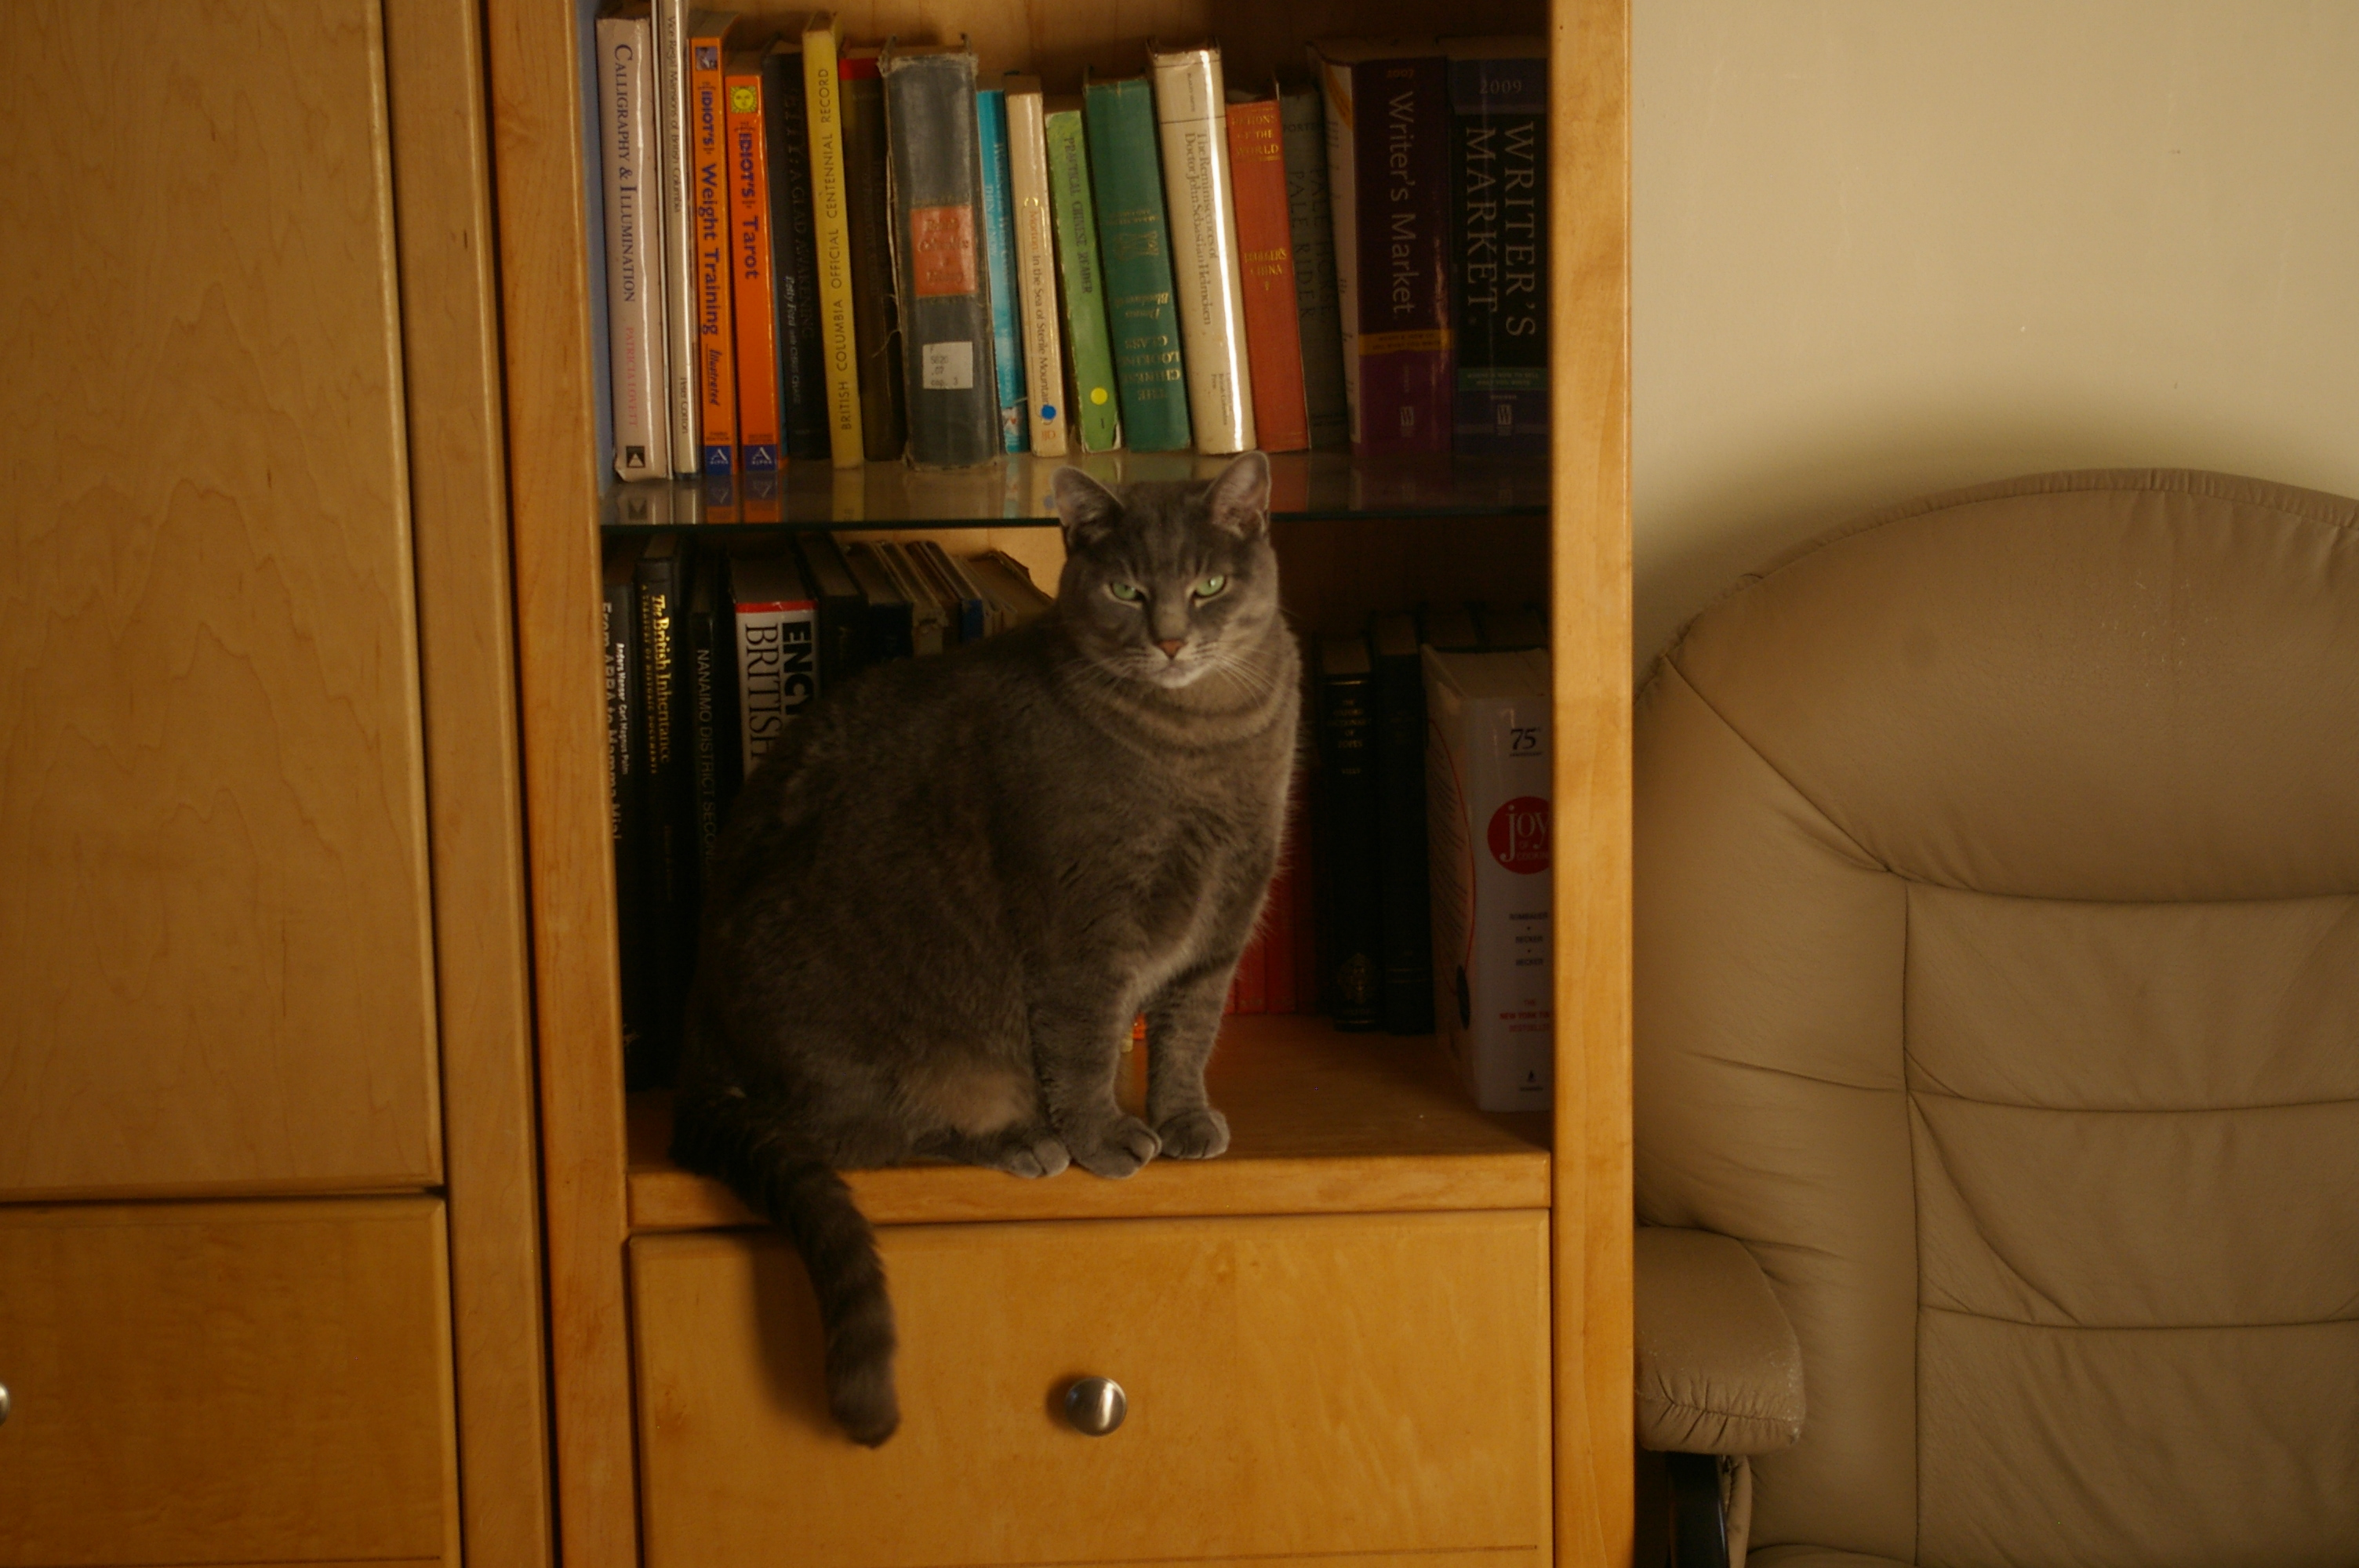 My cat Khan on the bookshelf